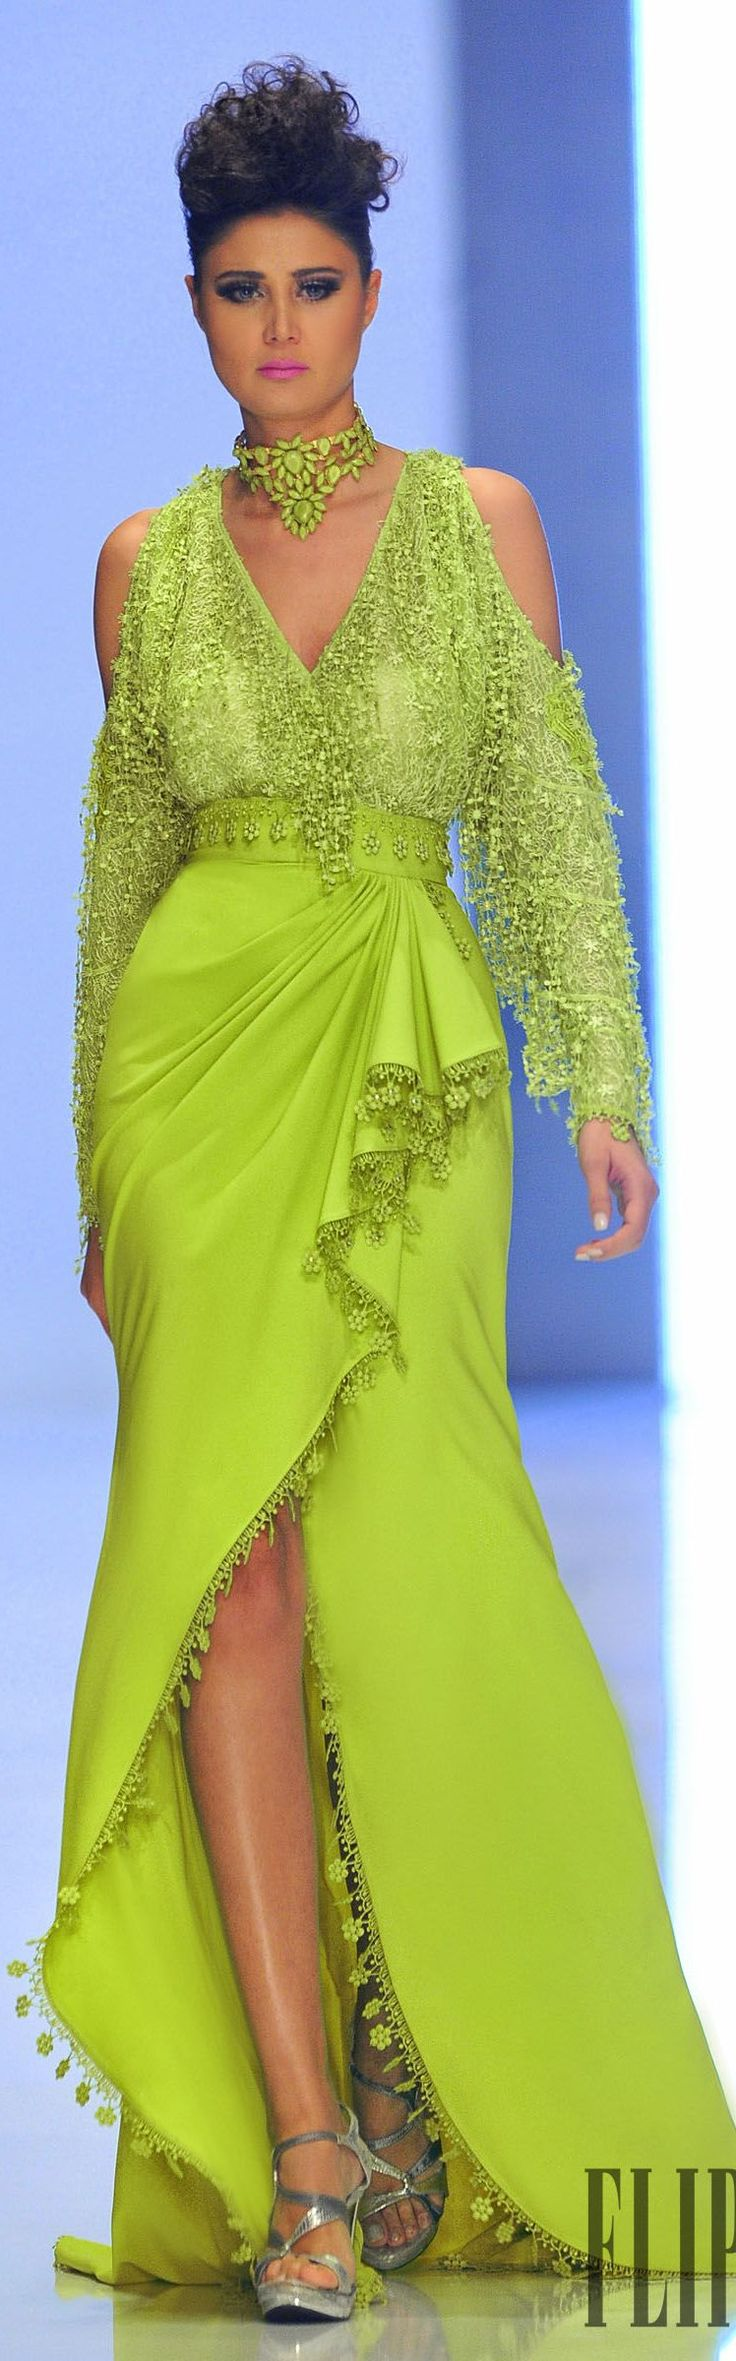 Fouad Sarkis Spring-summer 2014 Couture - #Luxurydotcom                                                                                                                                                                                 More